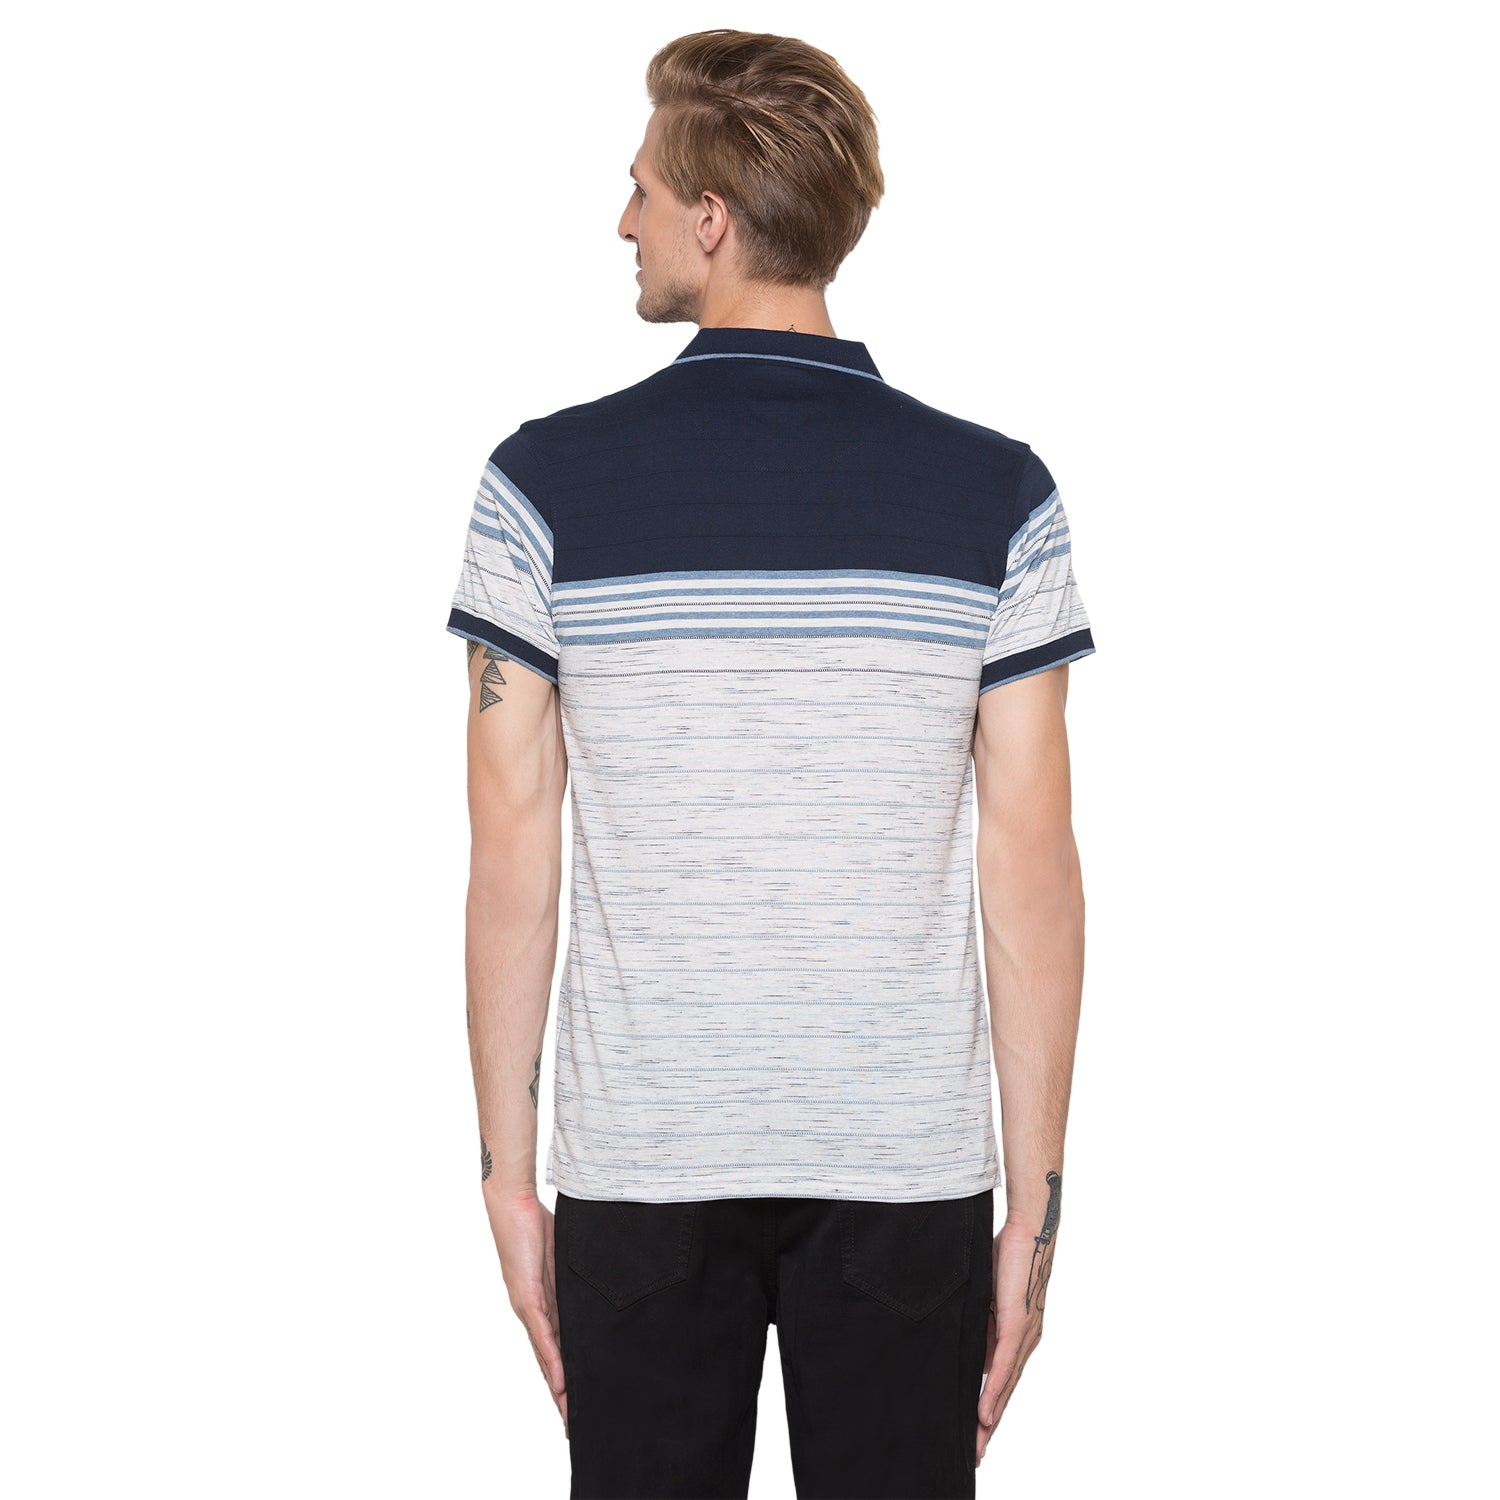 Globus Navy Blue Striped Polo T-Shirt-3